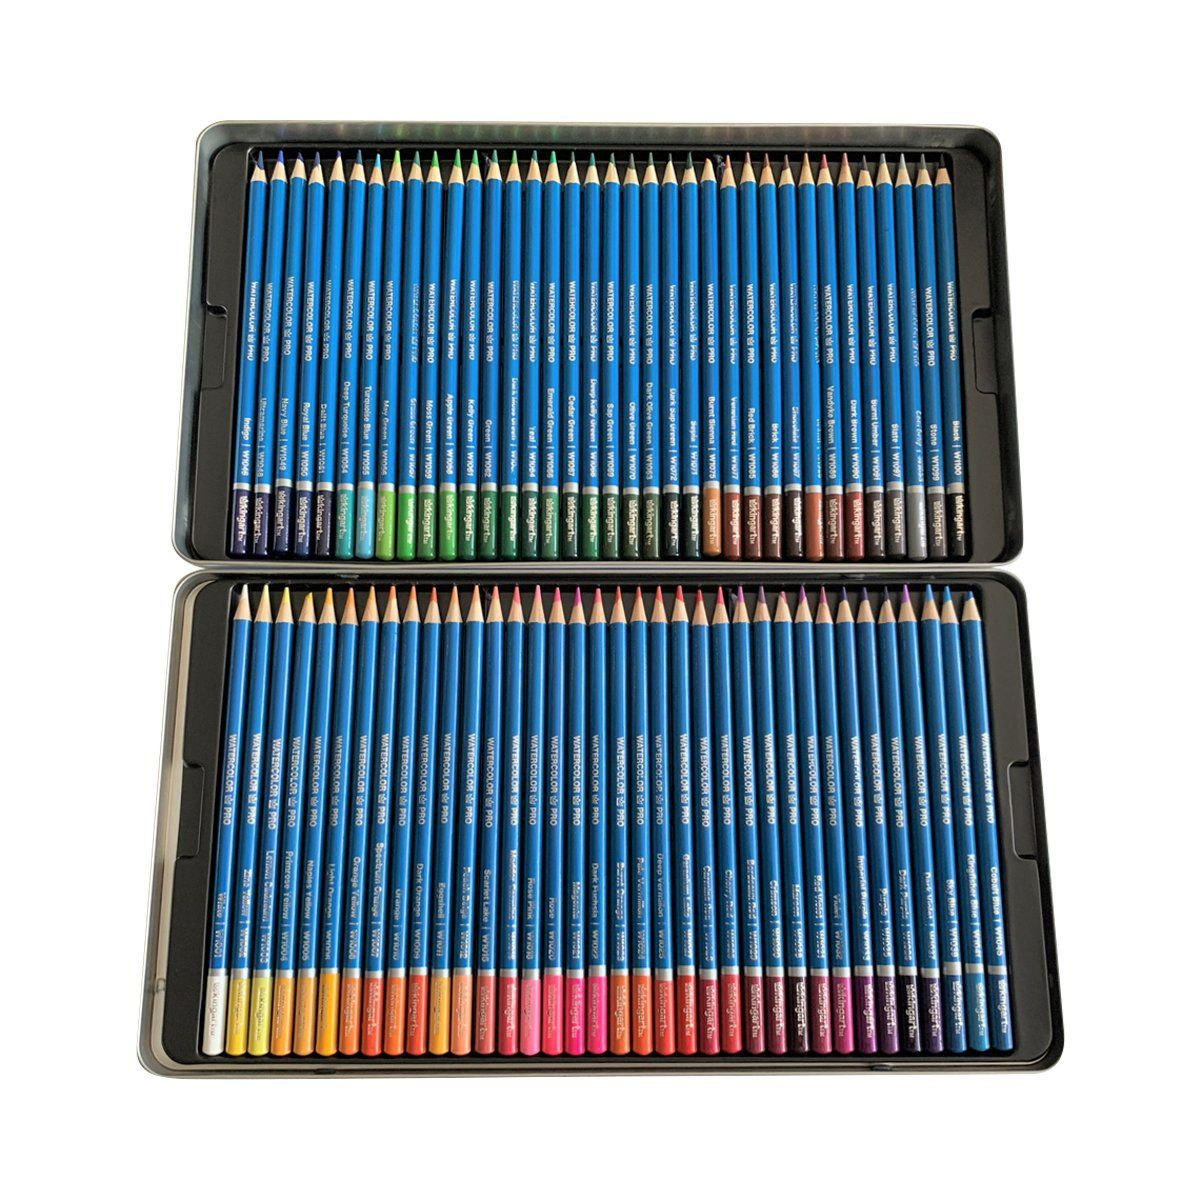 Kingart Pro Watercolor Pencil Collection Tin Case Set Of 72